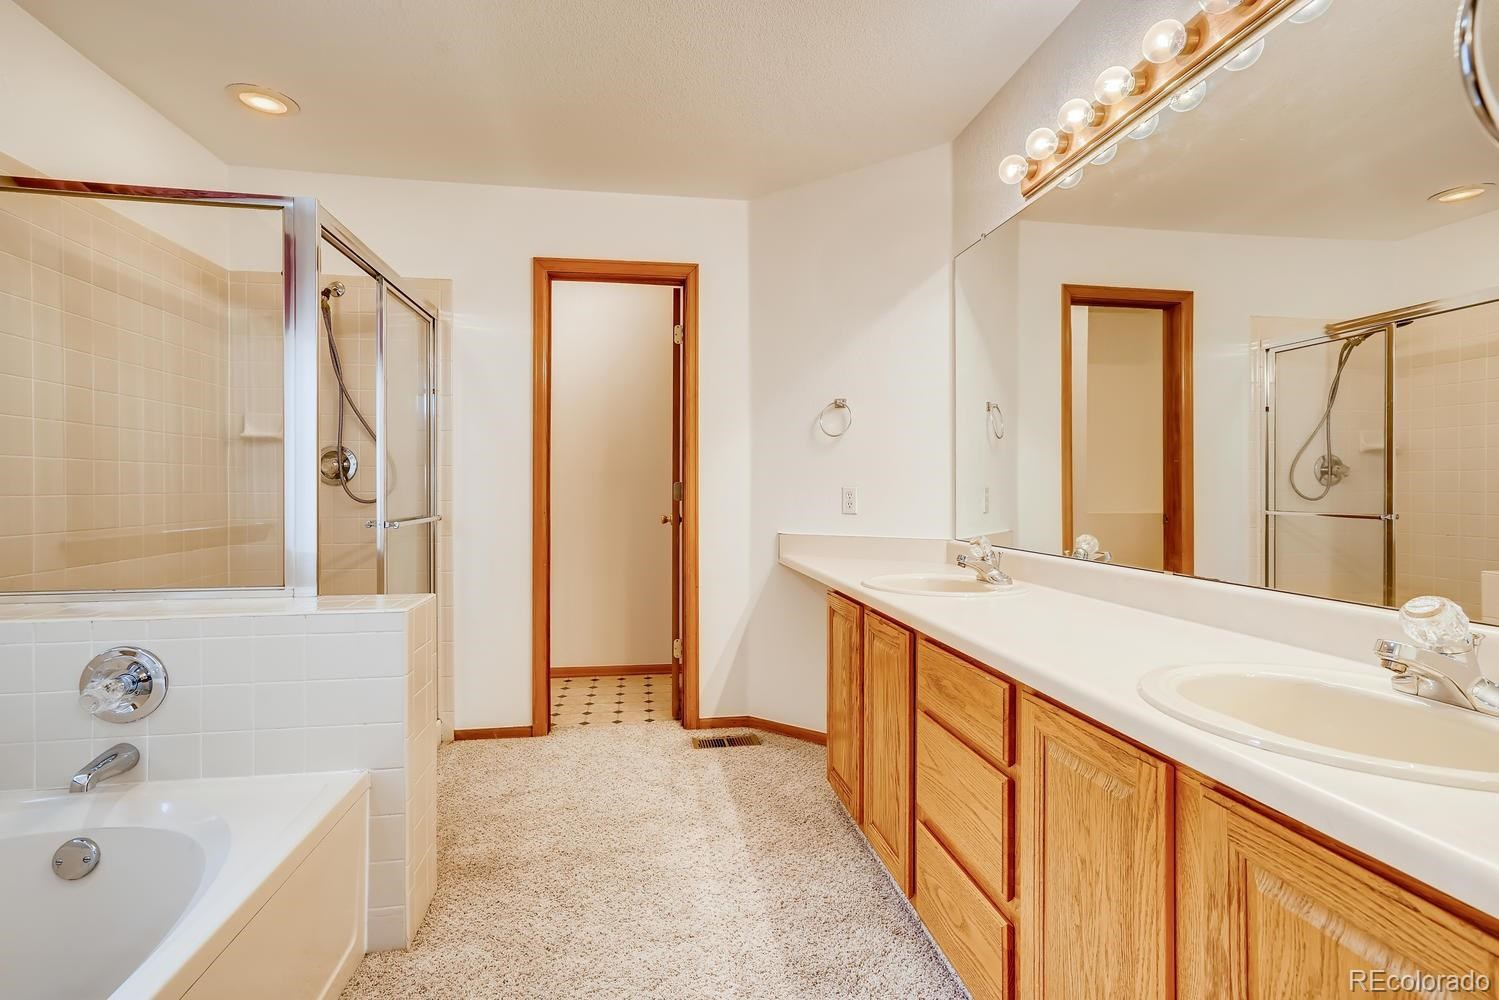 MLS# 6431155 - 18 - 6773 W 98th Circle, Westminster, CO 80021